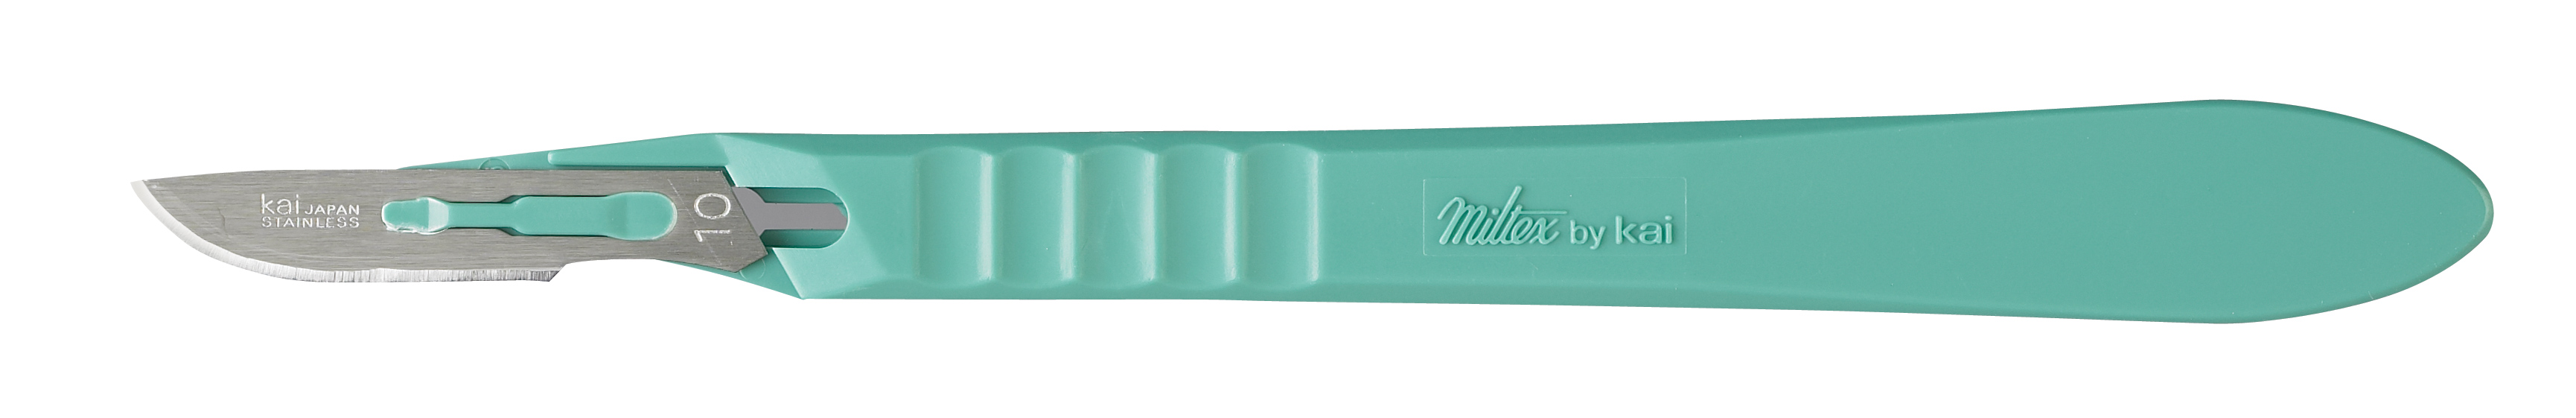 Miltex Surgical Scalpels and Blades